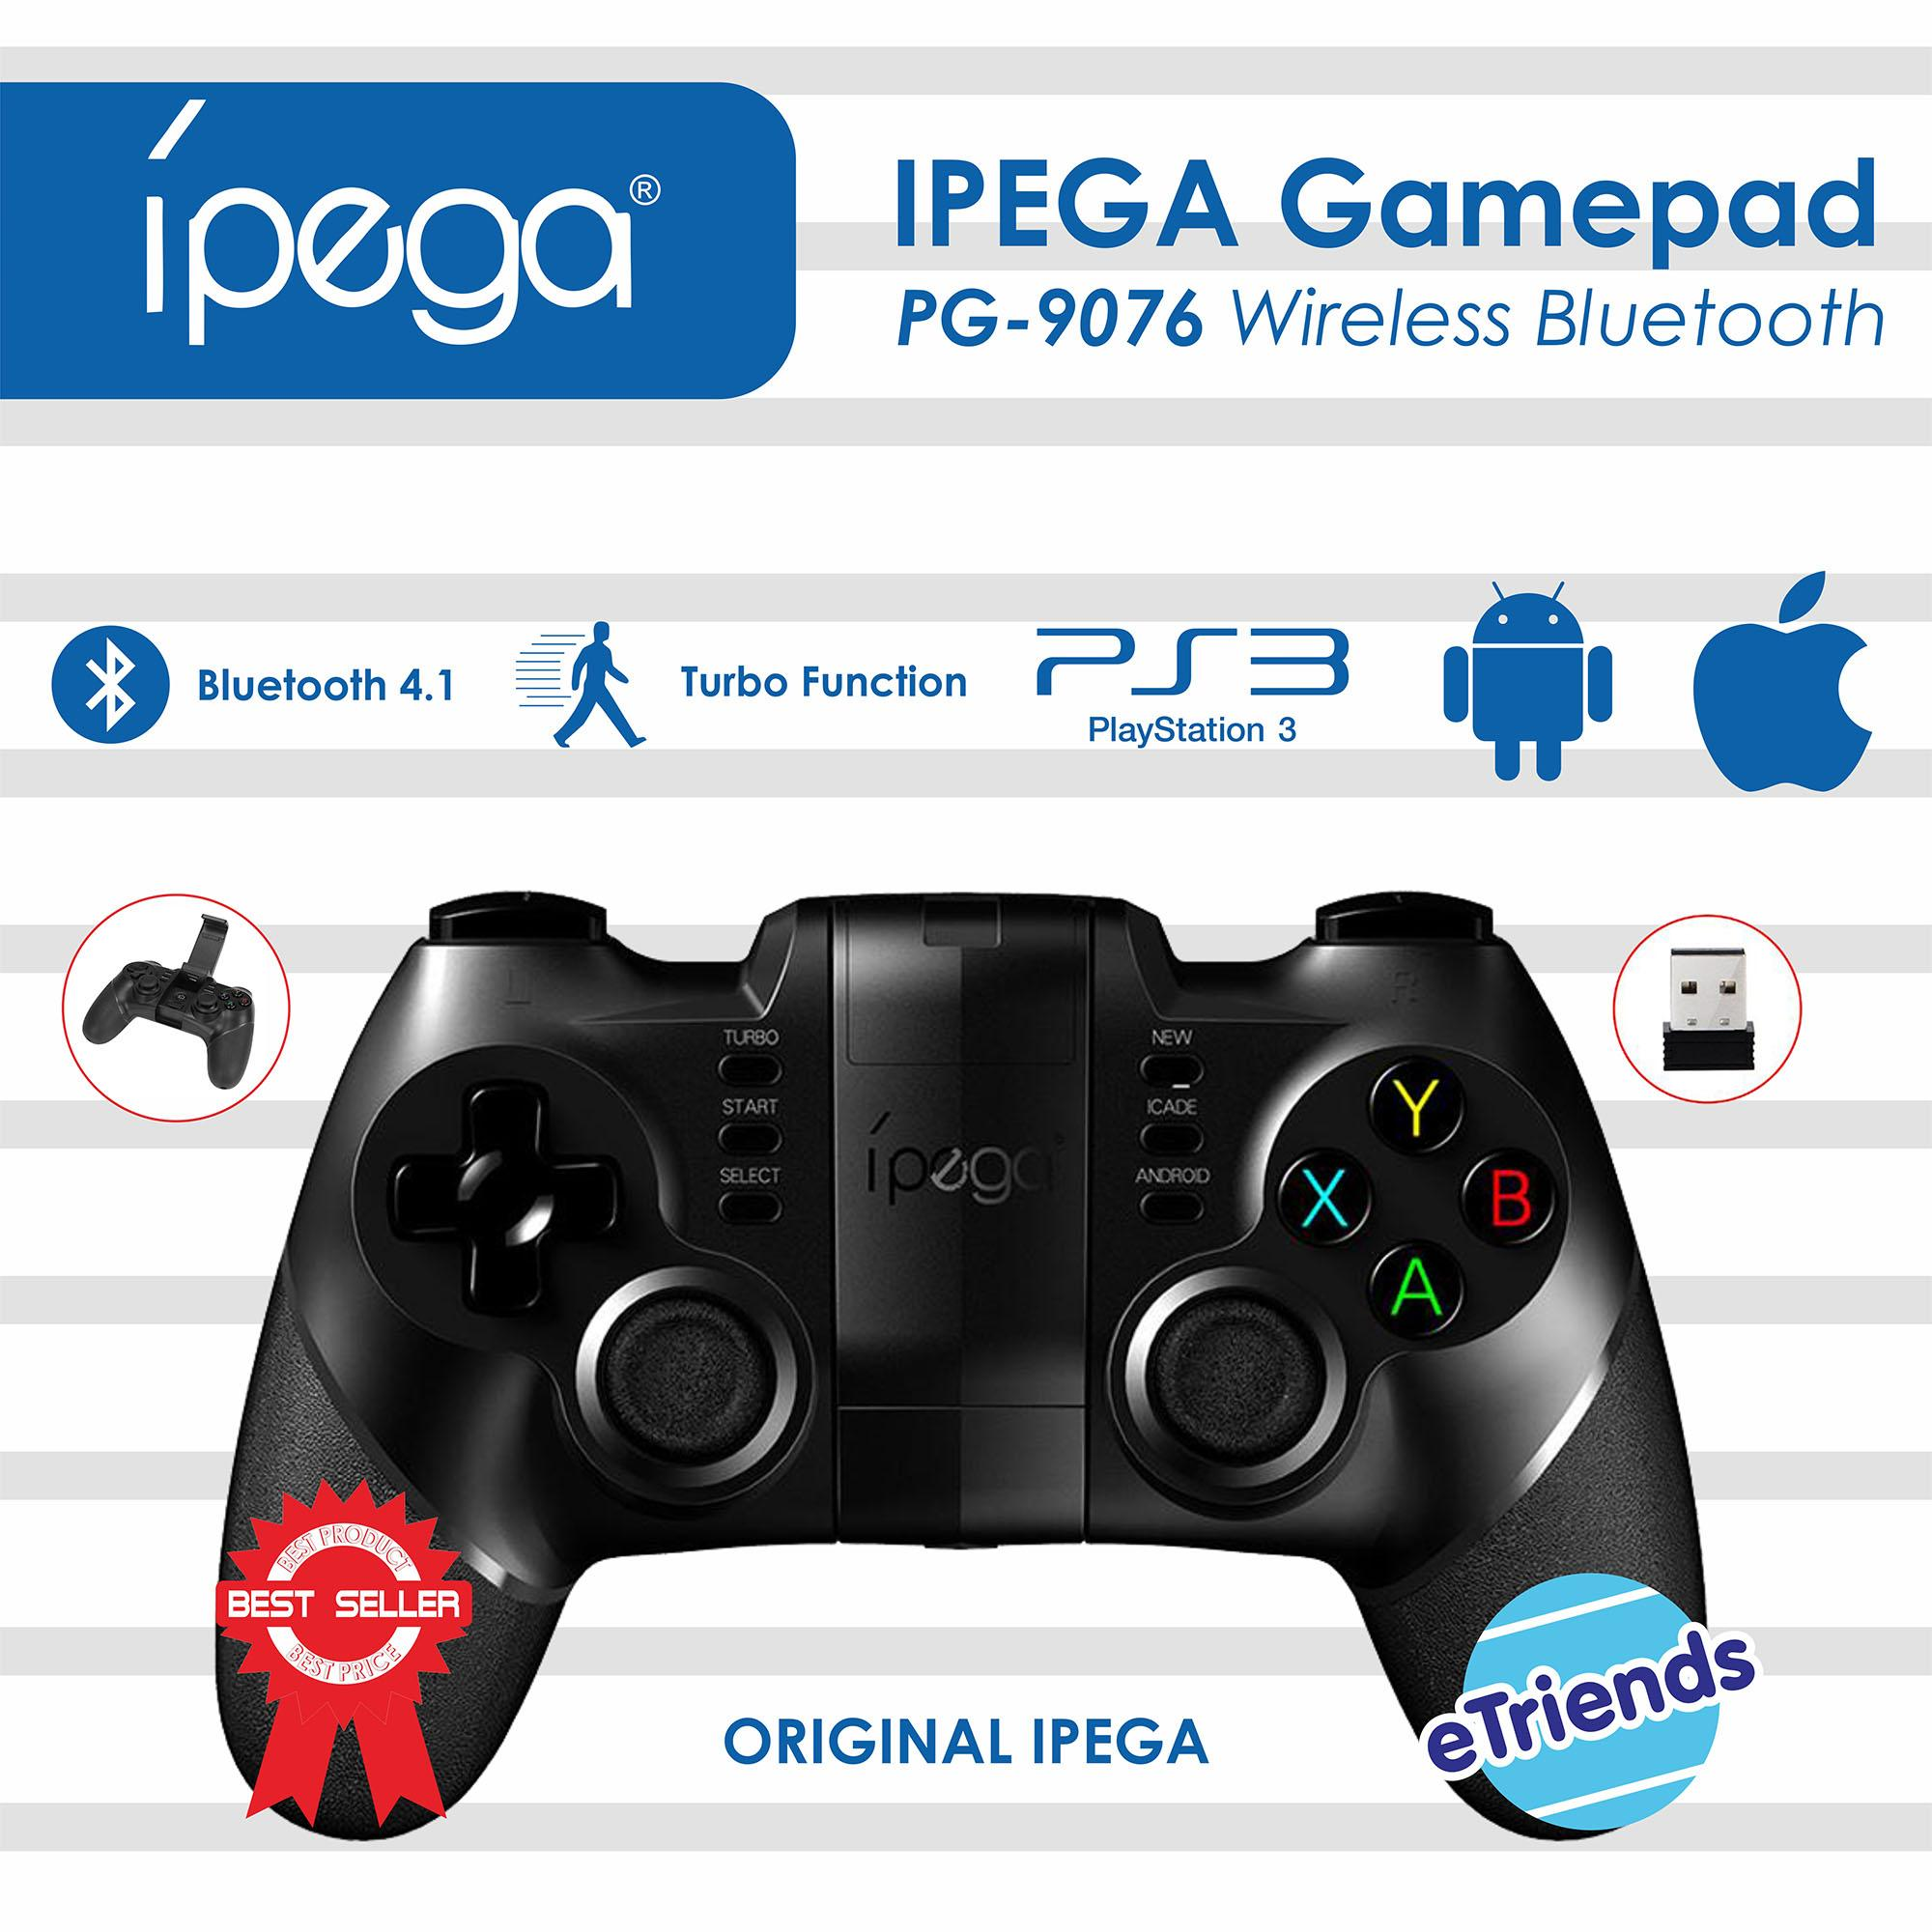 Gamepad Ipega PG-9076 Wireless Bluetooth For Android / Ios / PC / Playstation 3